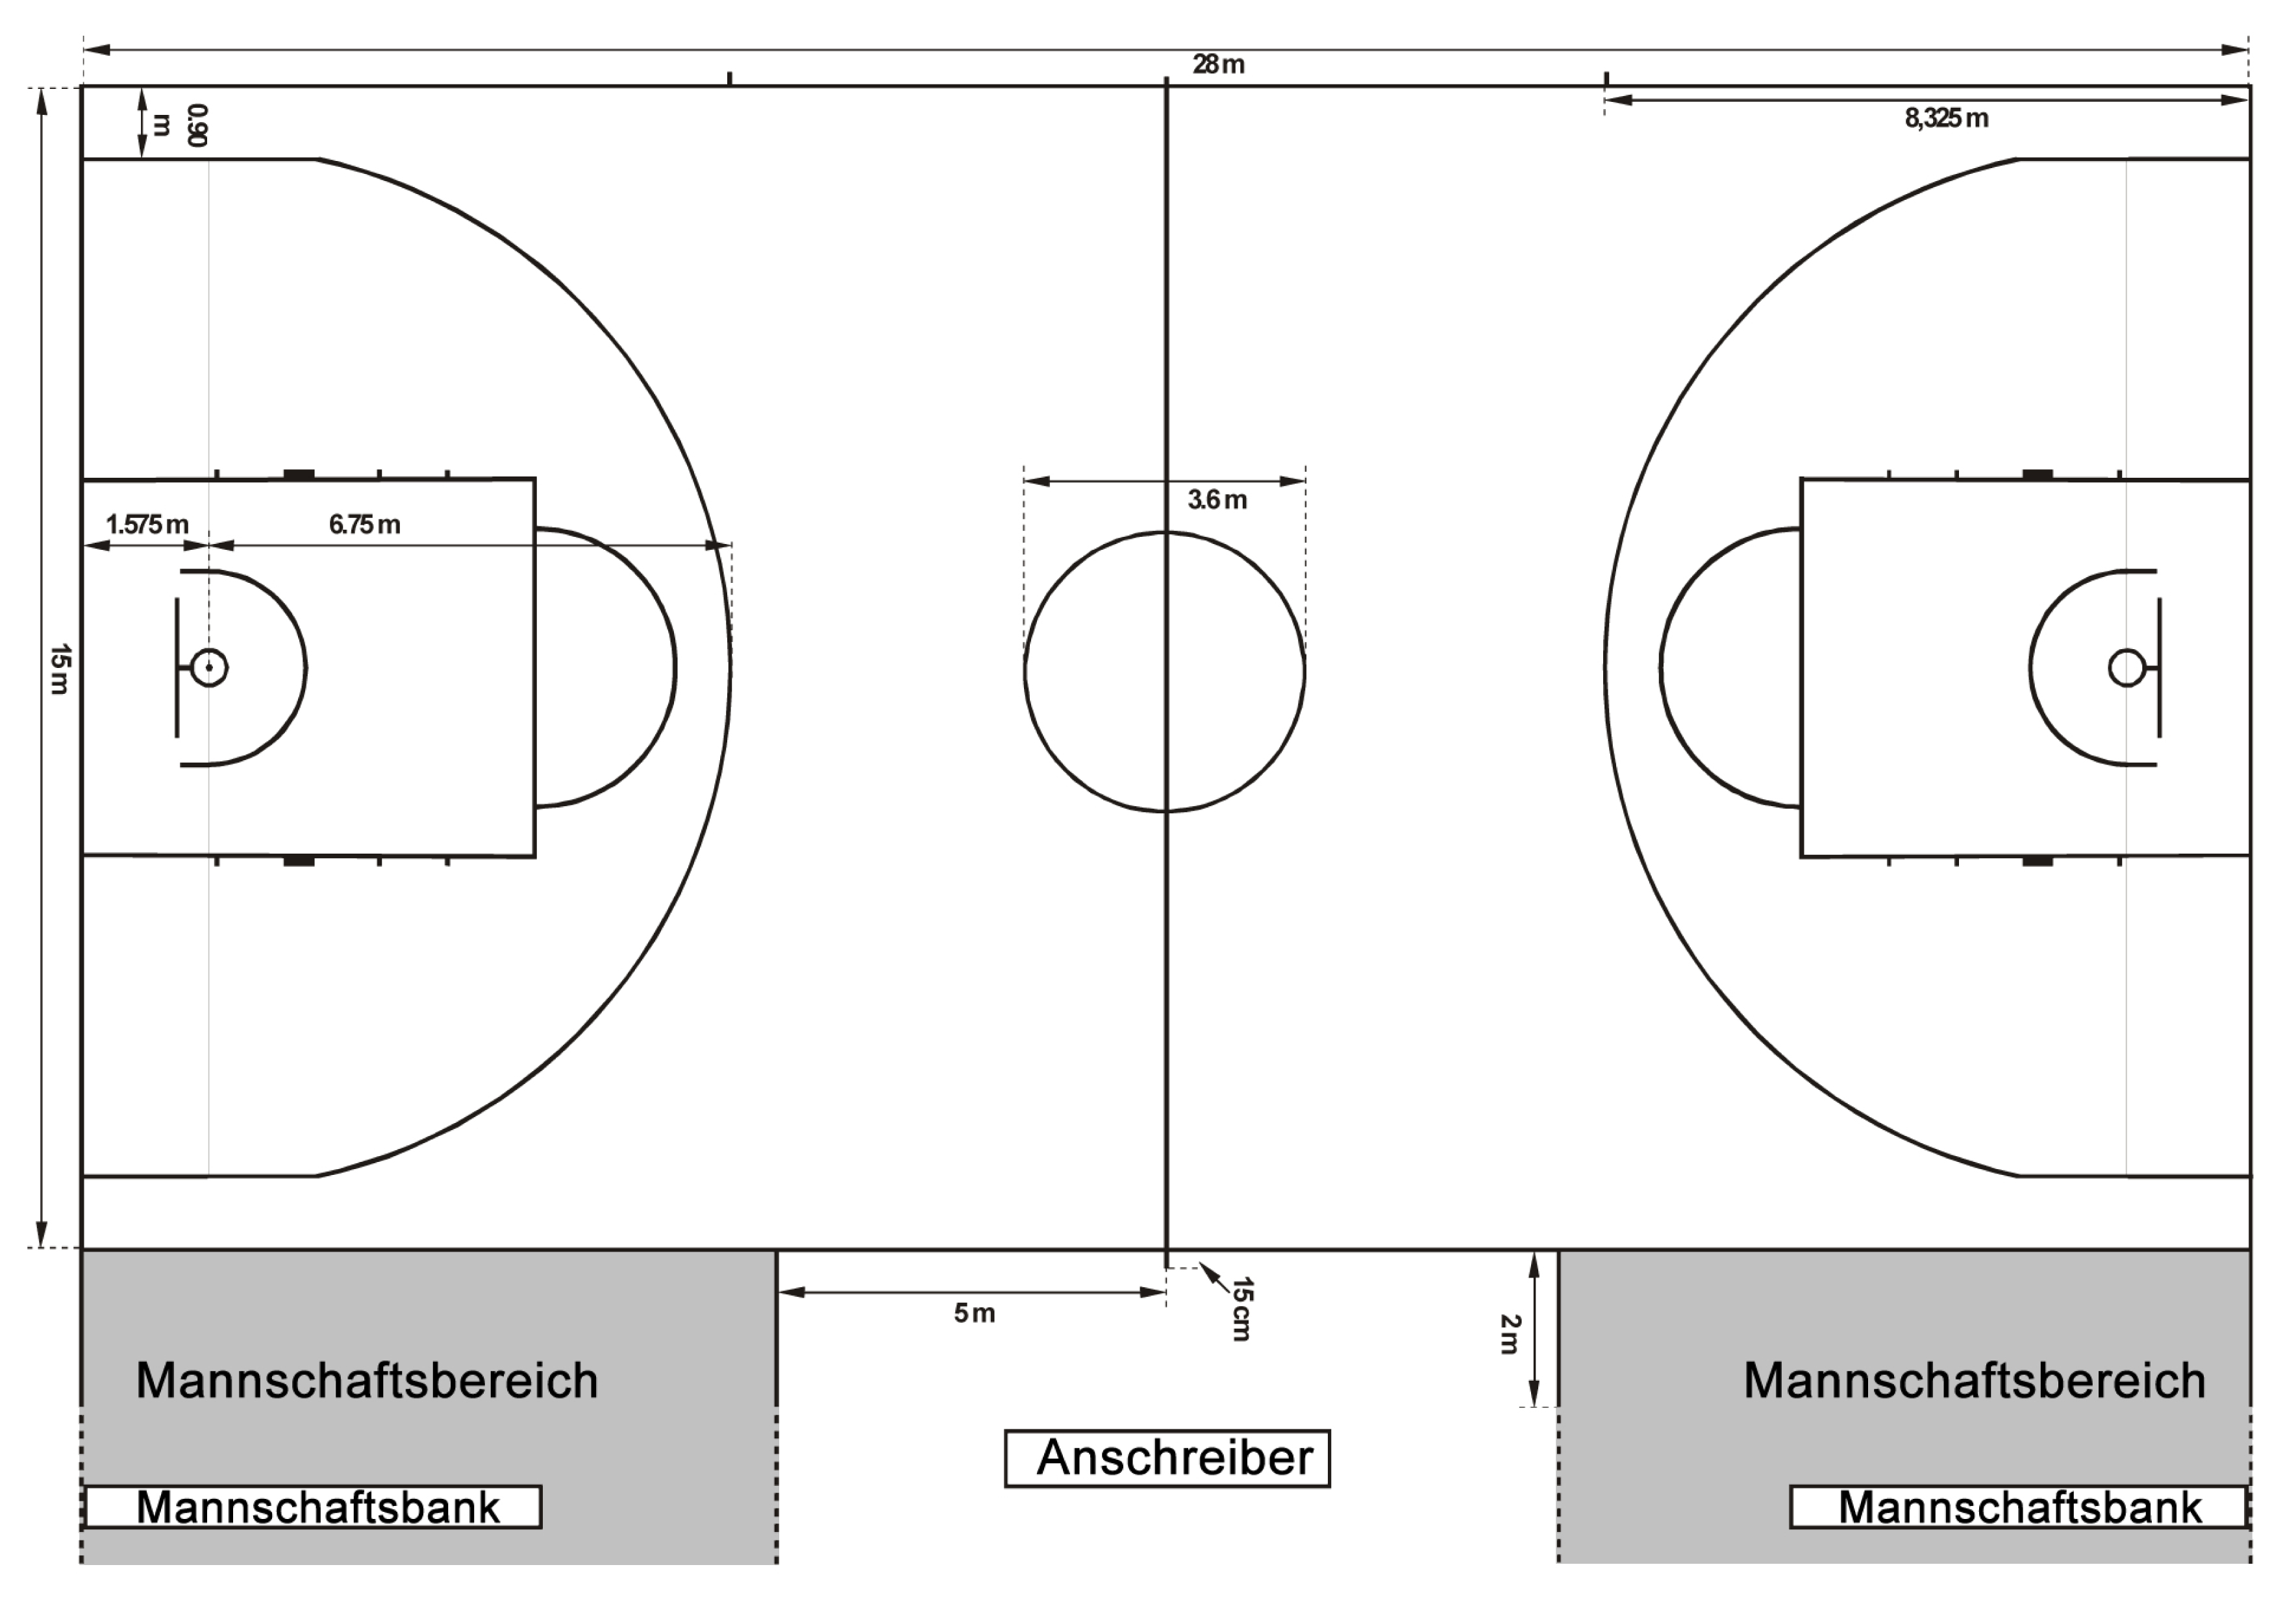 basketball court diagram with notes duo therm rv air conditioner wiring terrain de basket ball wikiwand